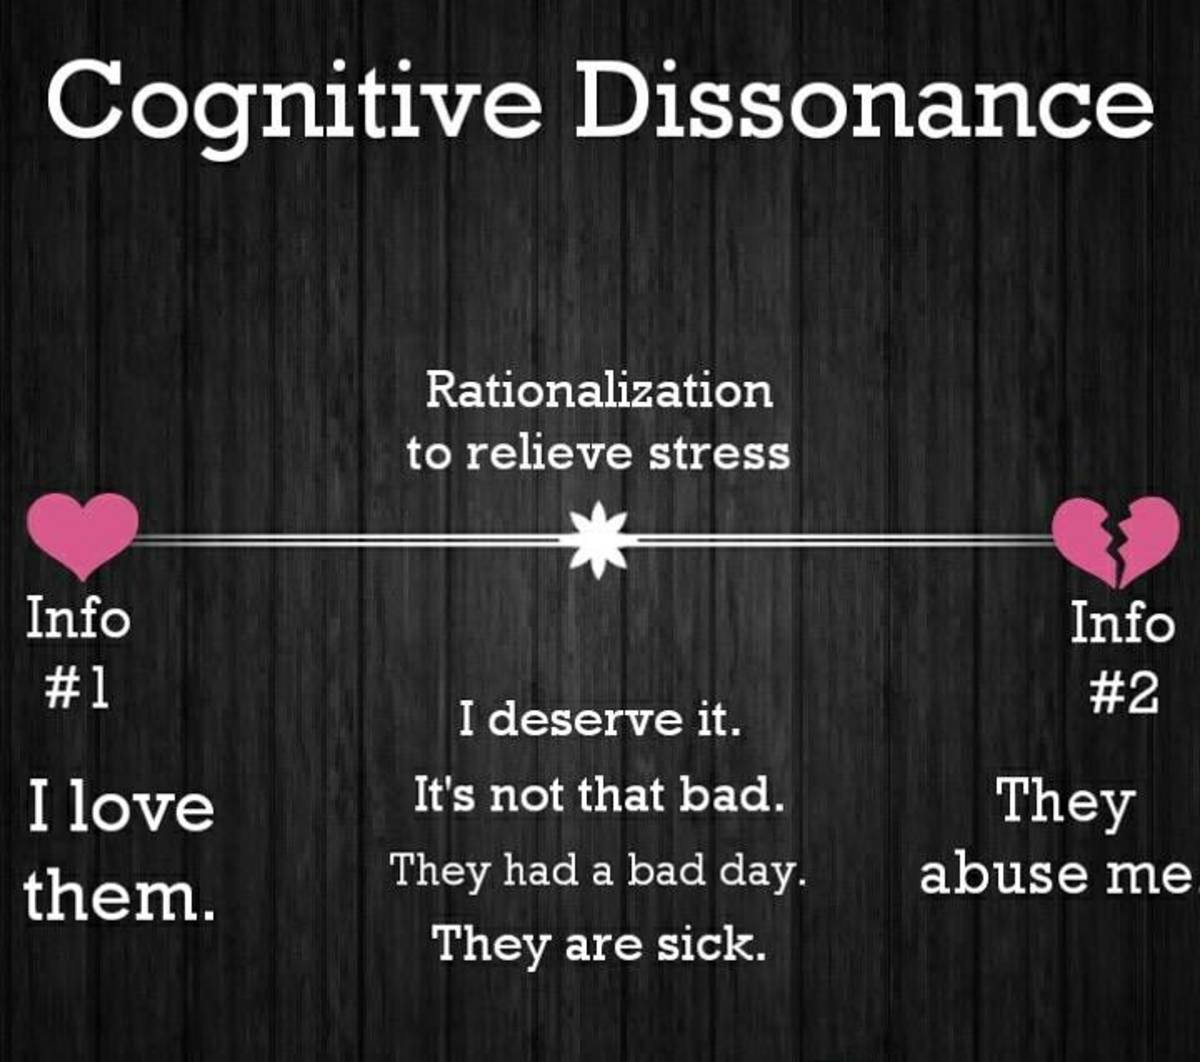 narcissistic-relationships-dealing-with-cognitive-dissonance